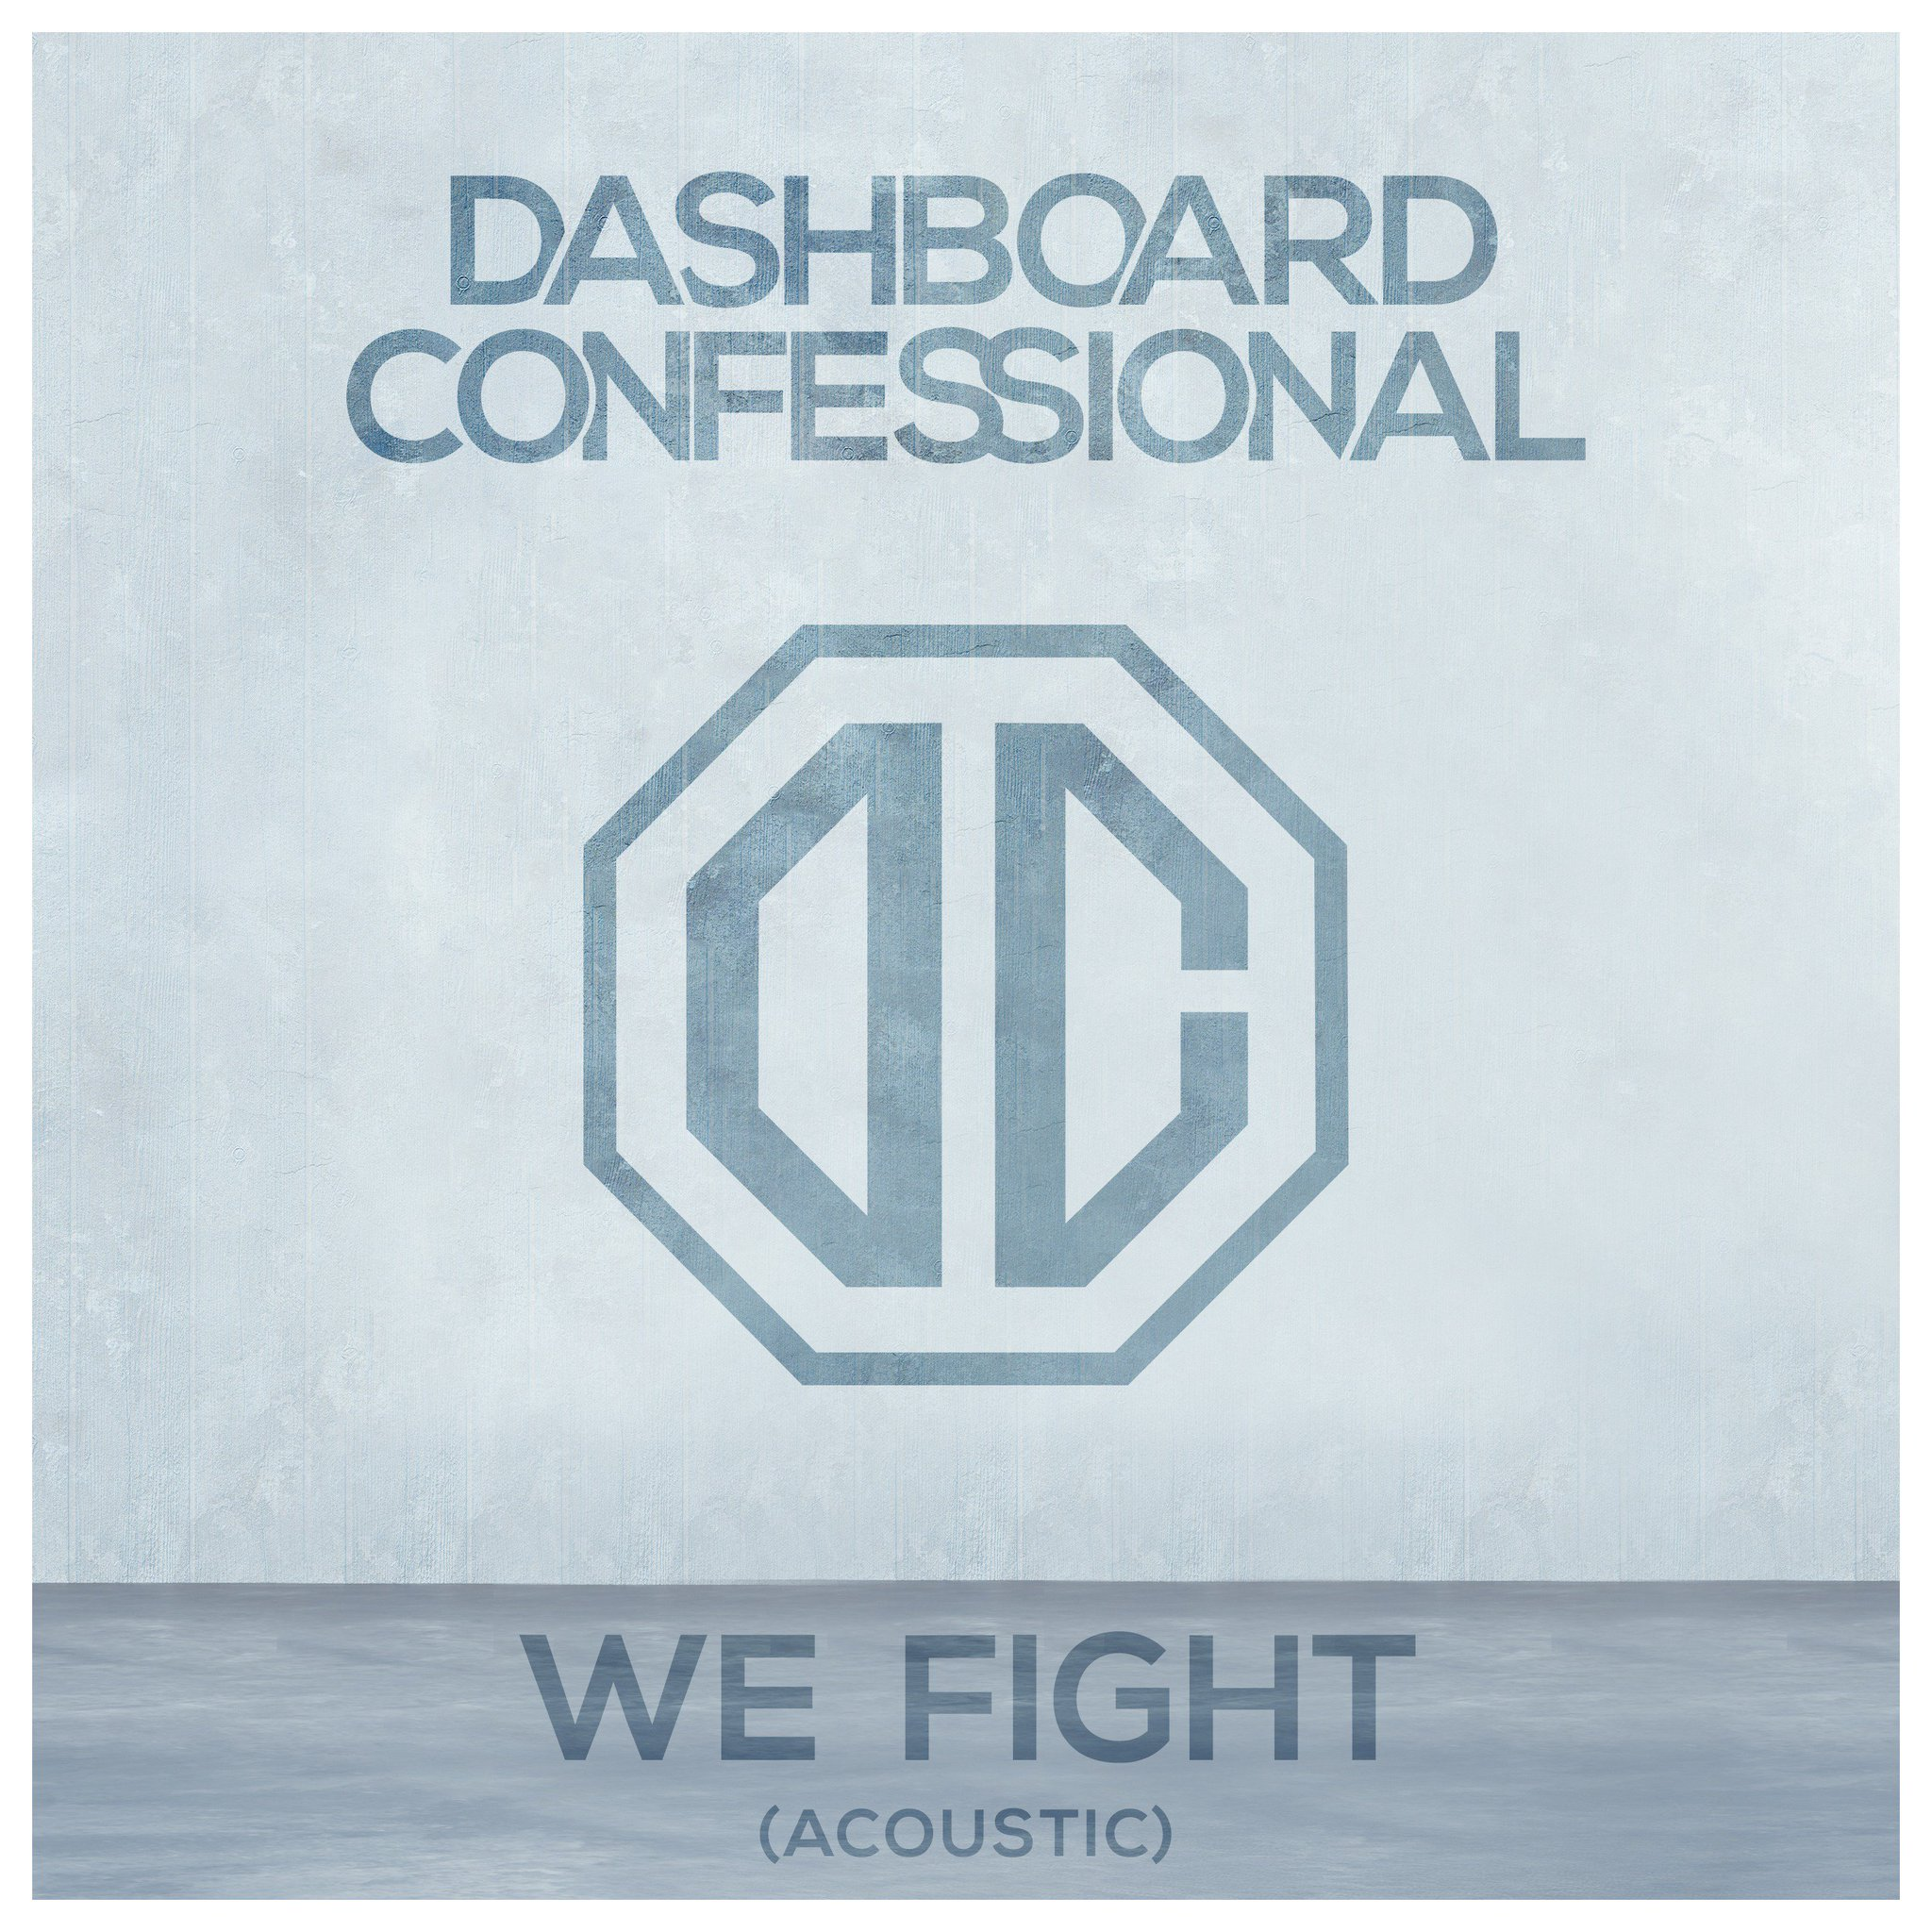 Check out the acoustic version of @dashboardmusic 's track 'We Fight' available now! https://t.co/P2fY5WKMzw https://t.co/X8KGJpWVMY